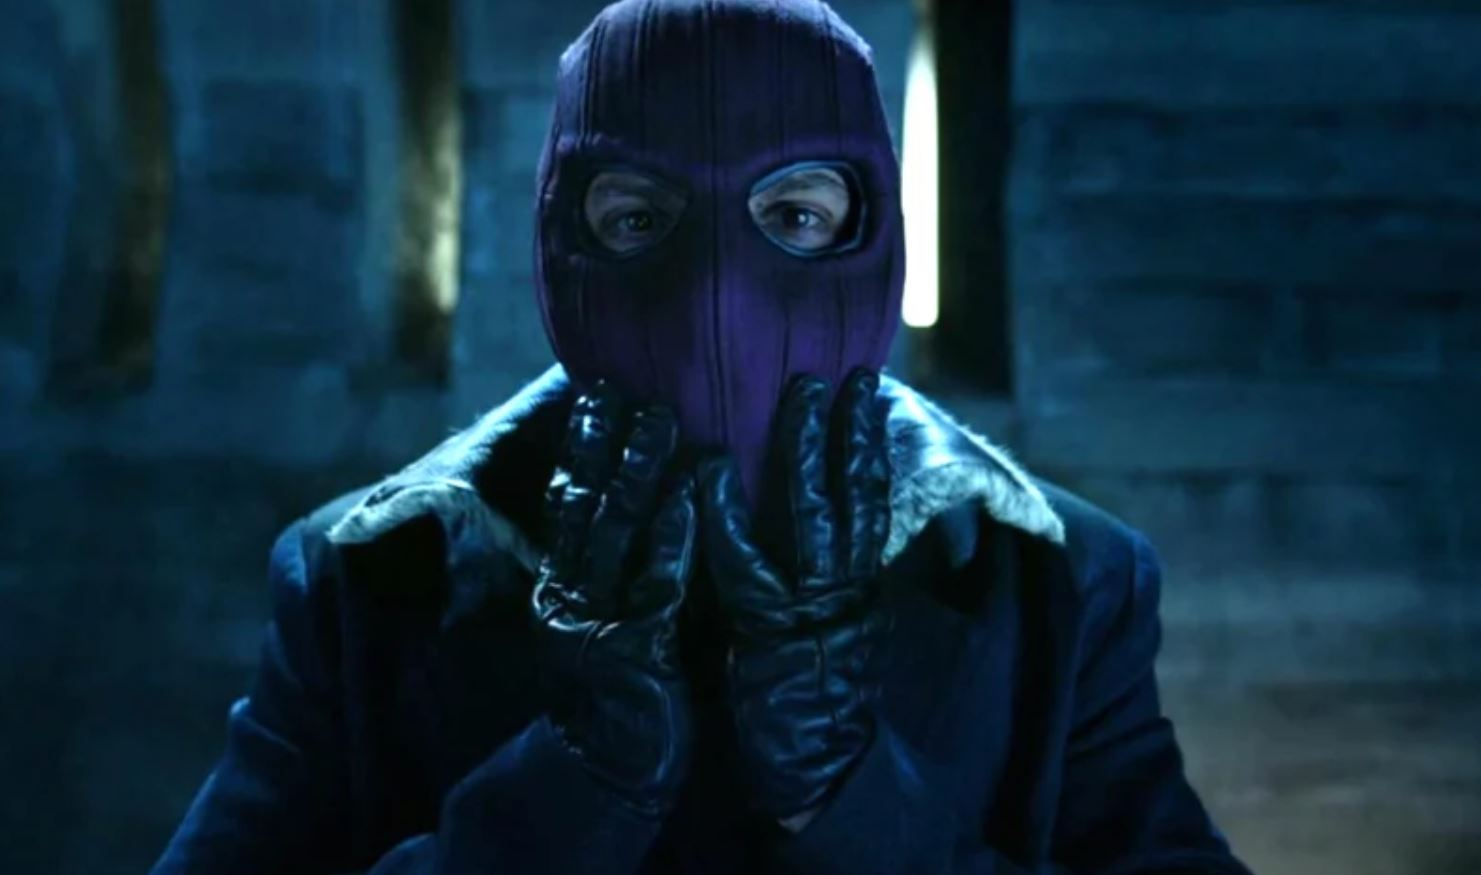 Baron Zemo arrives in The Falcon and The Winter Soldier